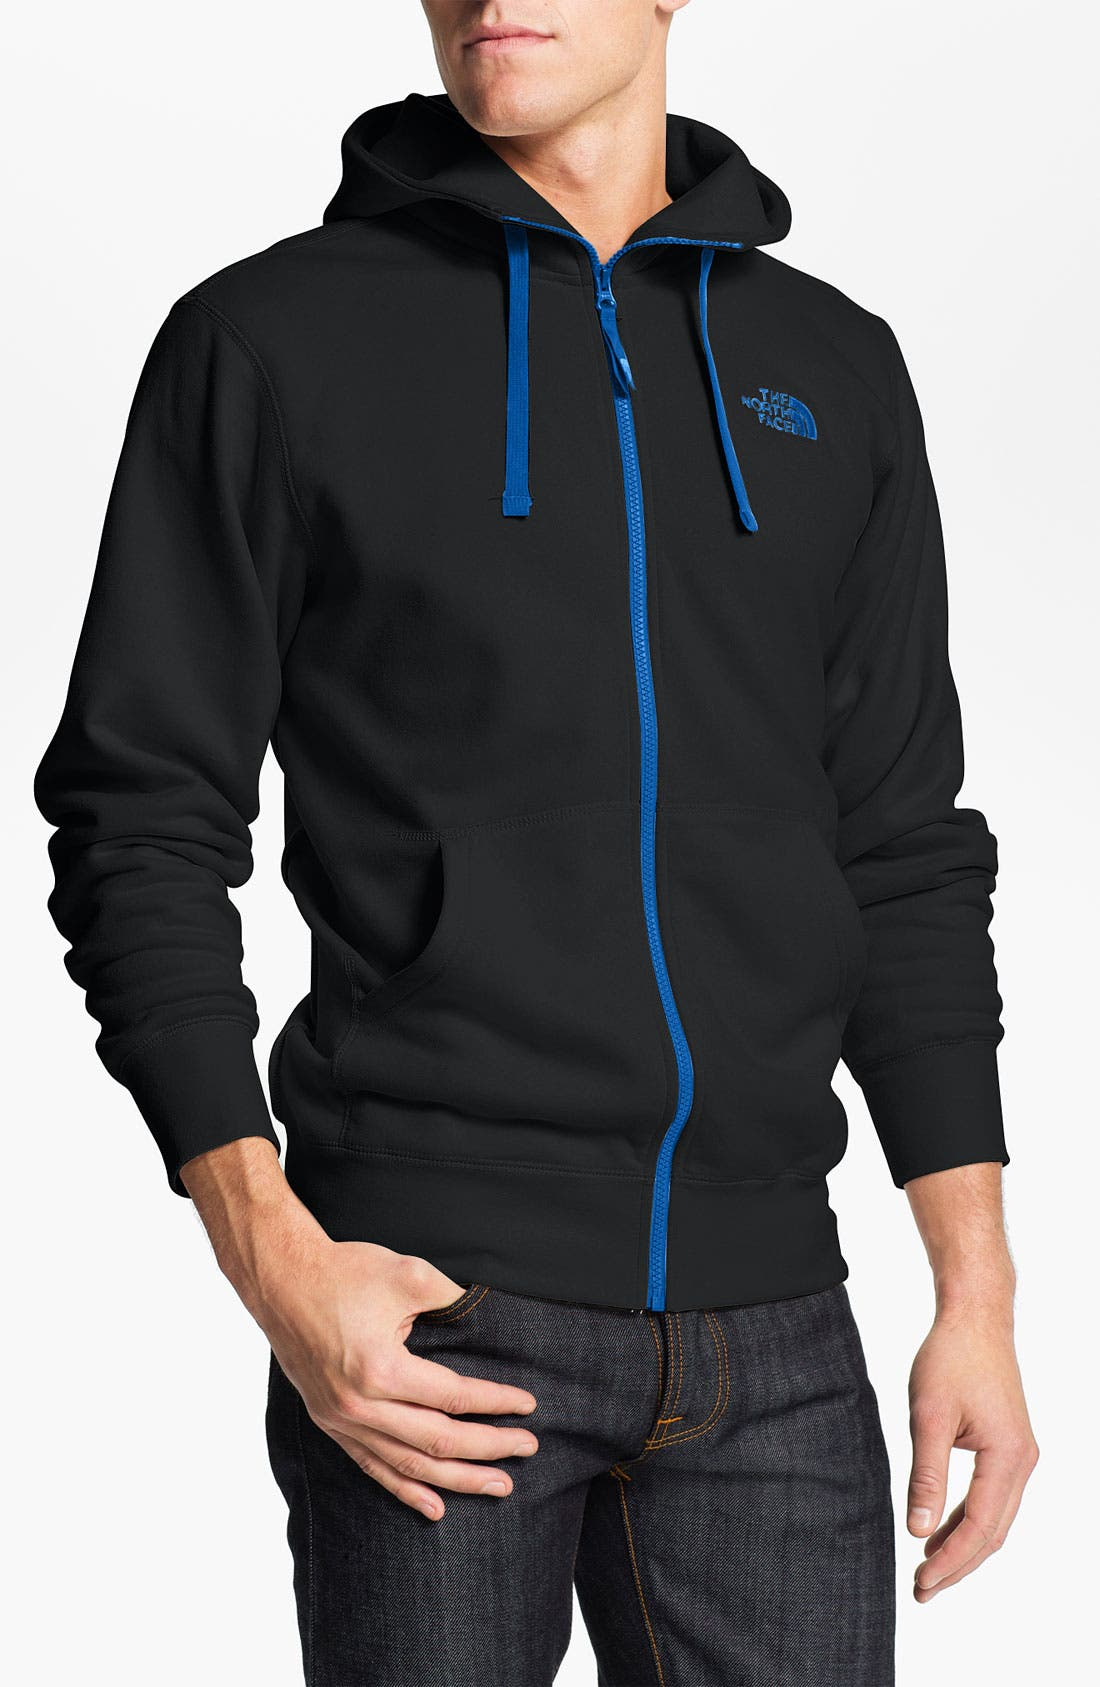 Main Image - The North Face 'Rearview' Full Zip Hoodie